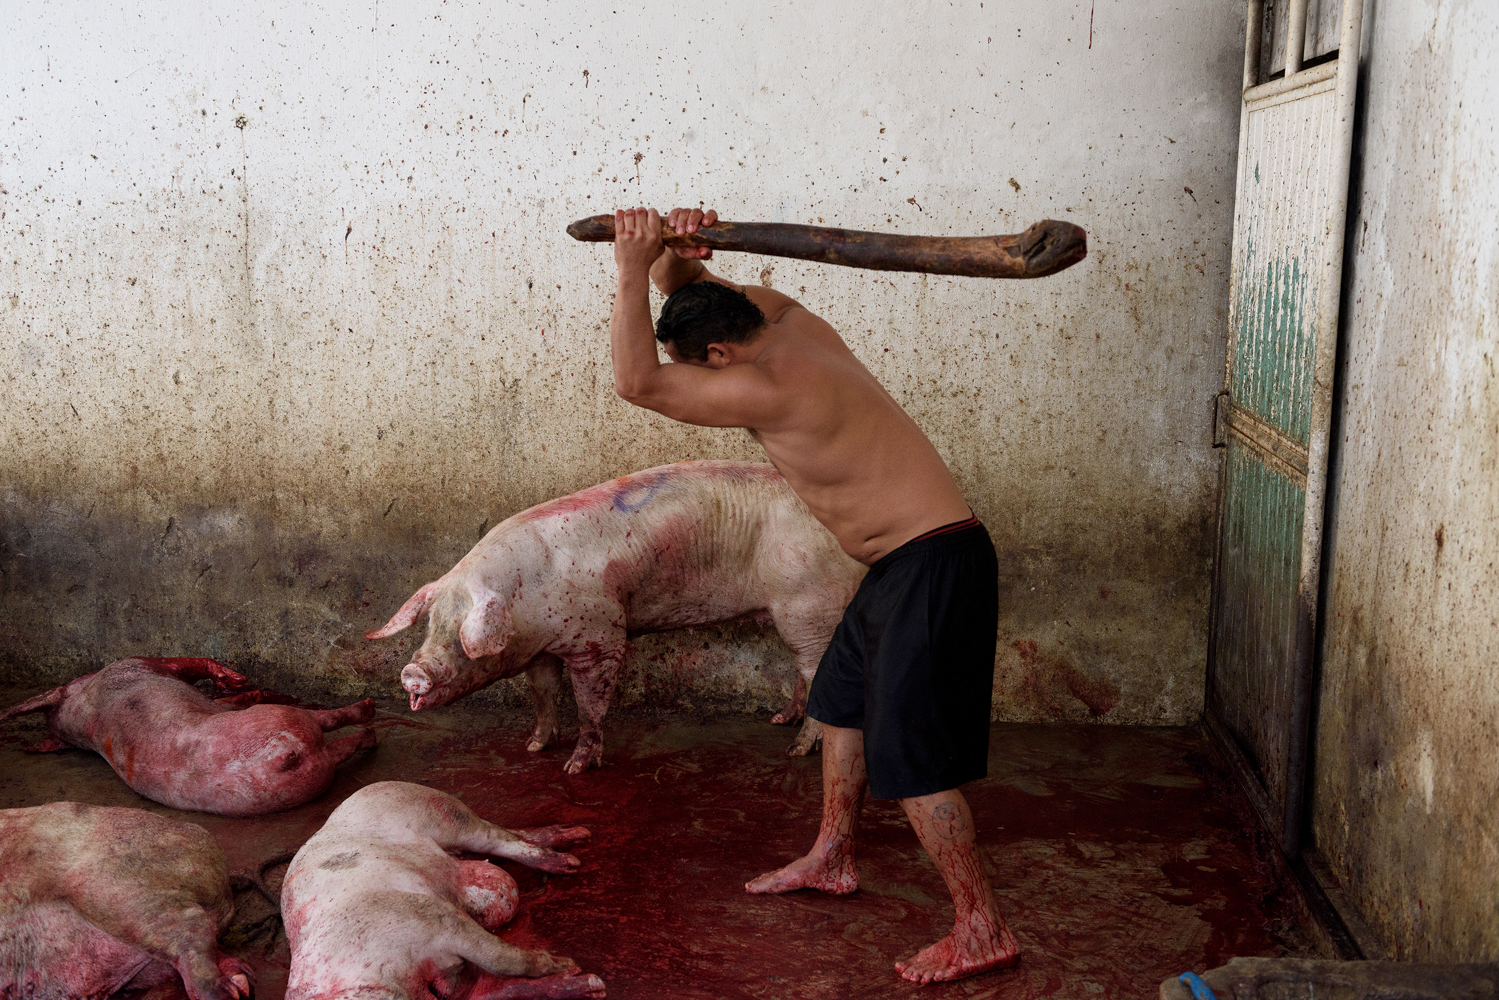 A worker beats some pigs with a club in order to immobilize them and facilitate the slaughter by throat slitting.. Chiapas, 2017. © Aitor Garmendia